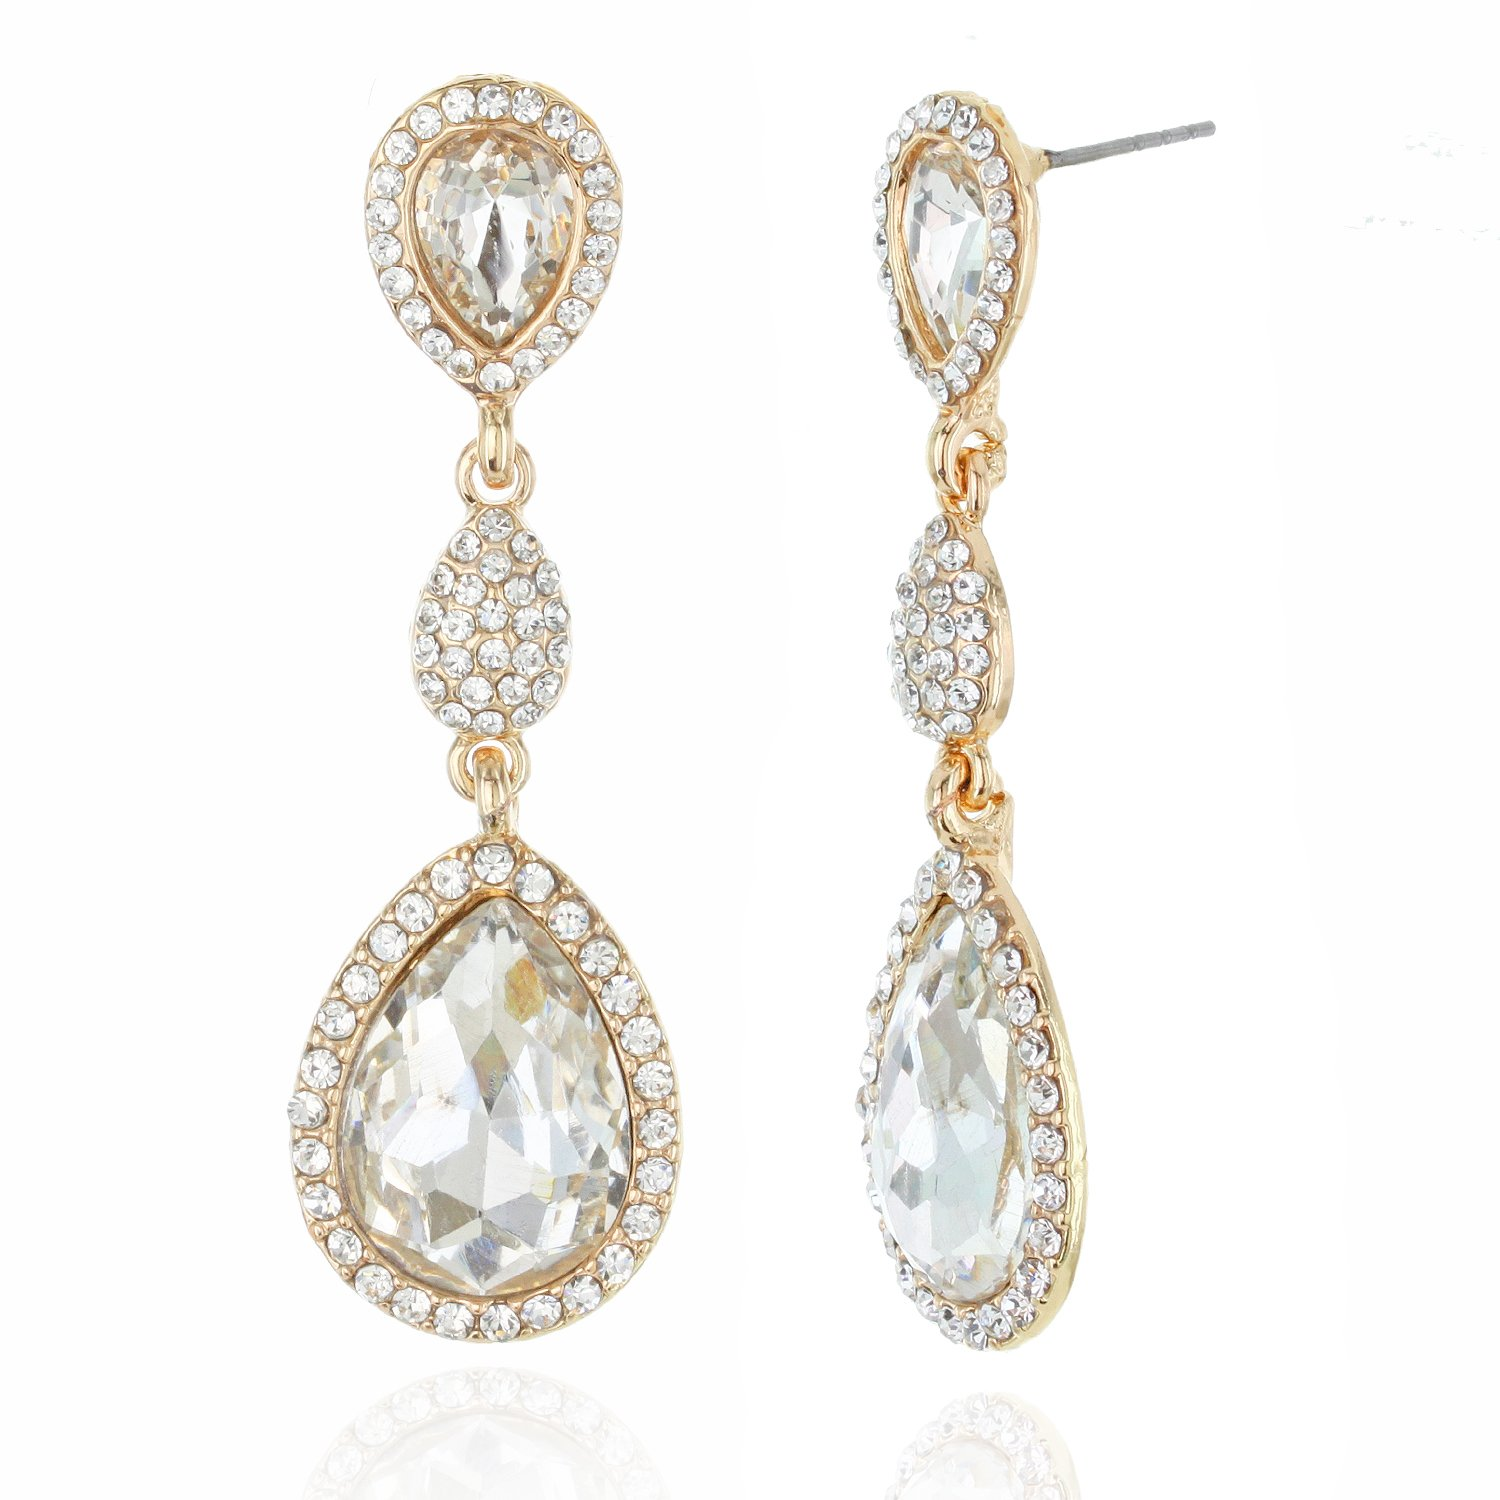 Bridal statement Jewelry Halo Tear Drop Dangle Austrian Crystal Accented Earrings in Gold